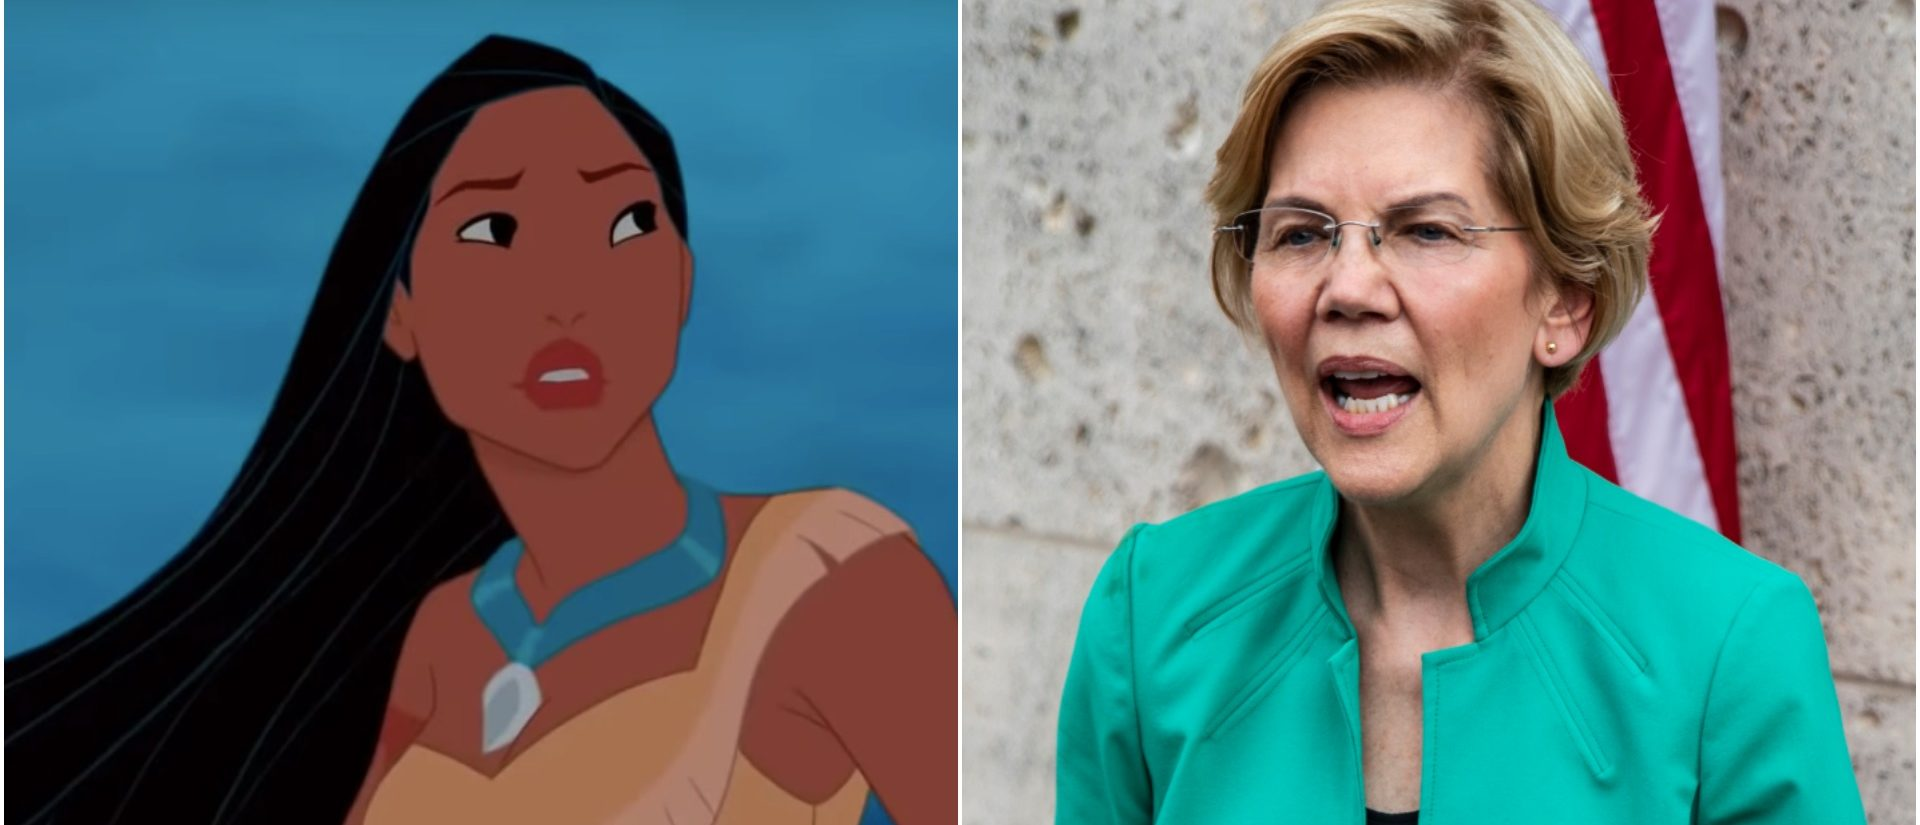 Which Democratic Candidate's Doppelgänger Is The Most Accurate?